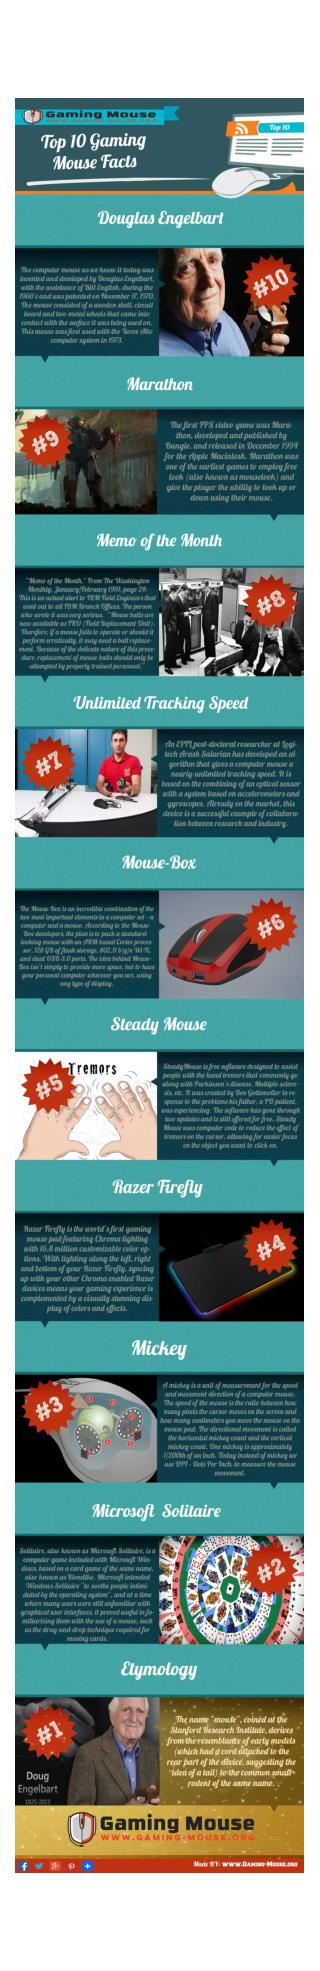 Top 10 Gaming Mouse Facts